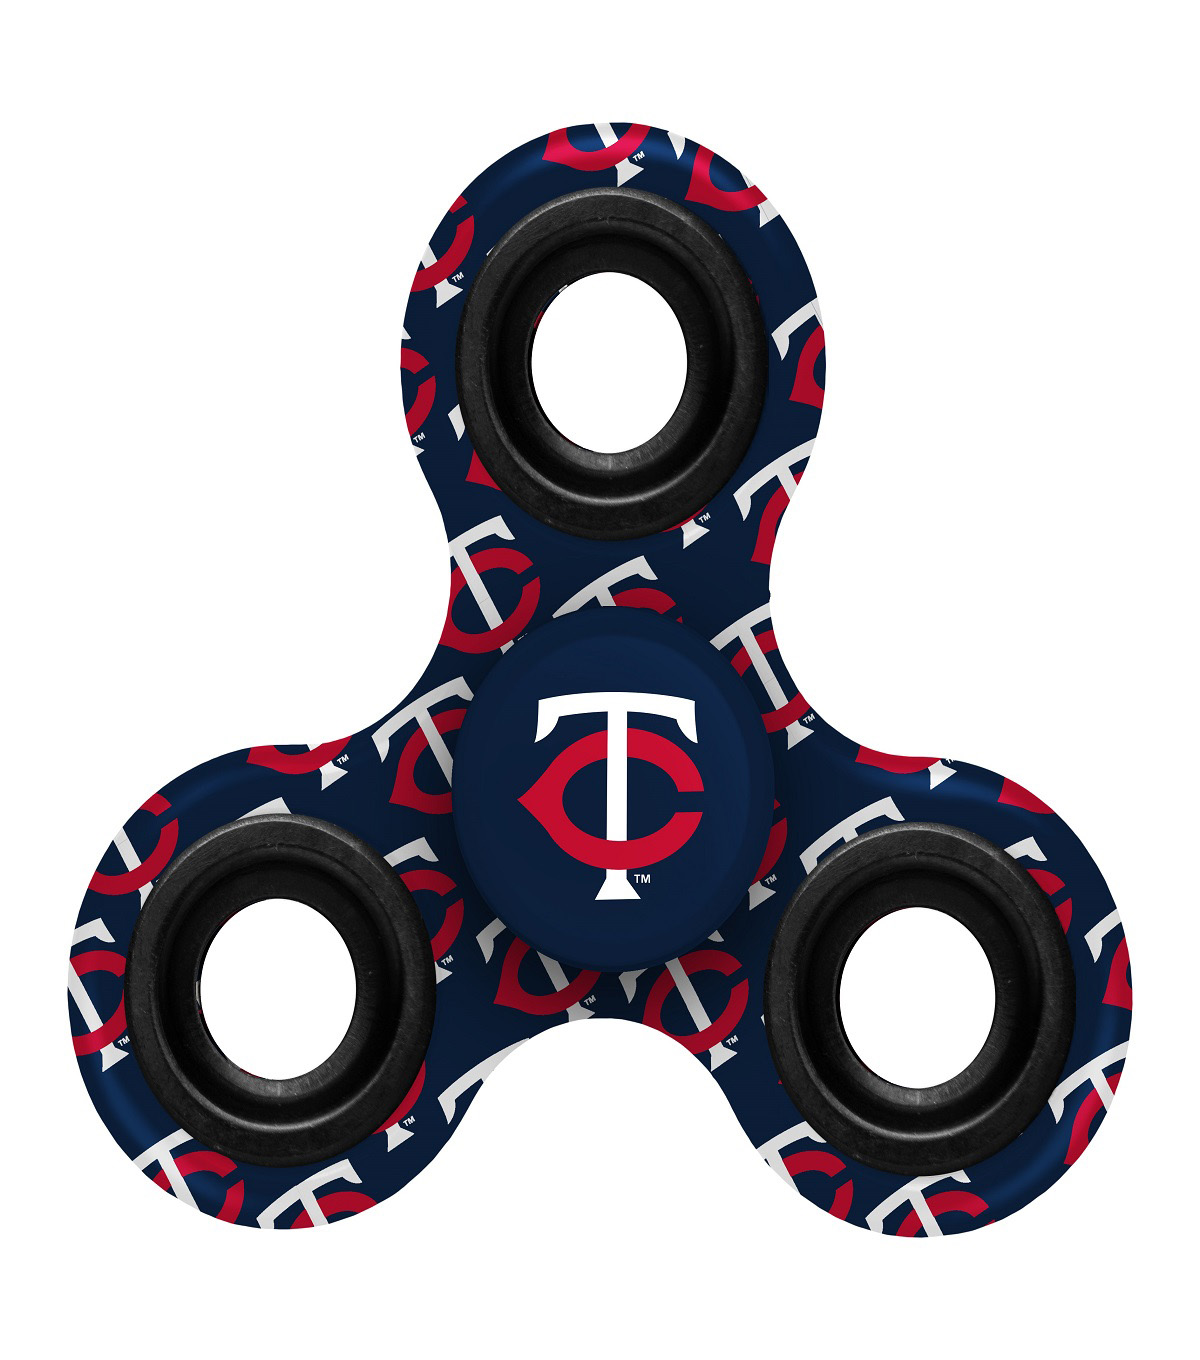 Minnesota Twins Diztracto Spinnerz-Three Way Fidget Spinner